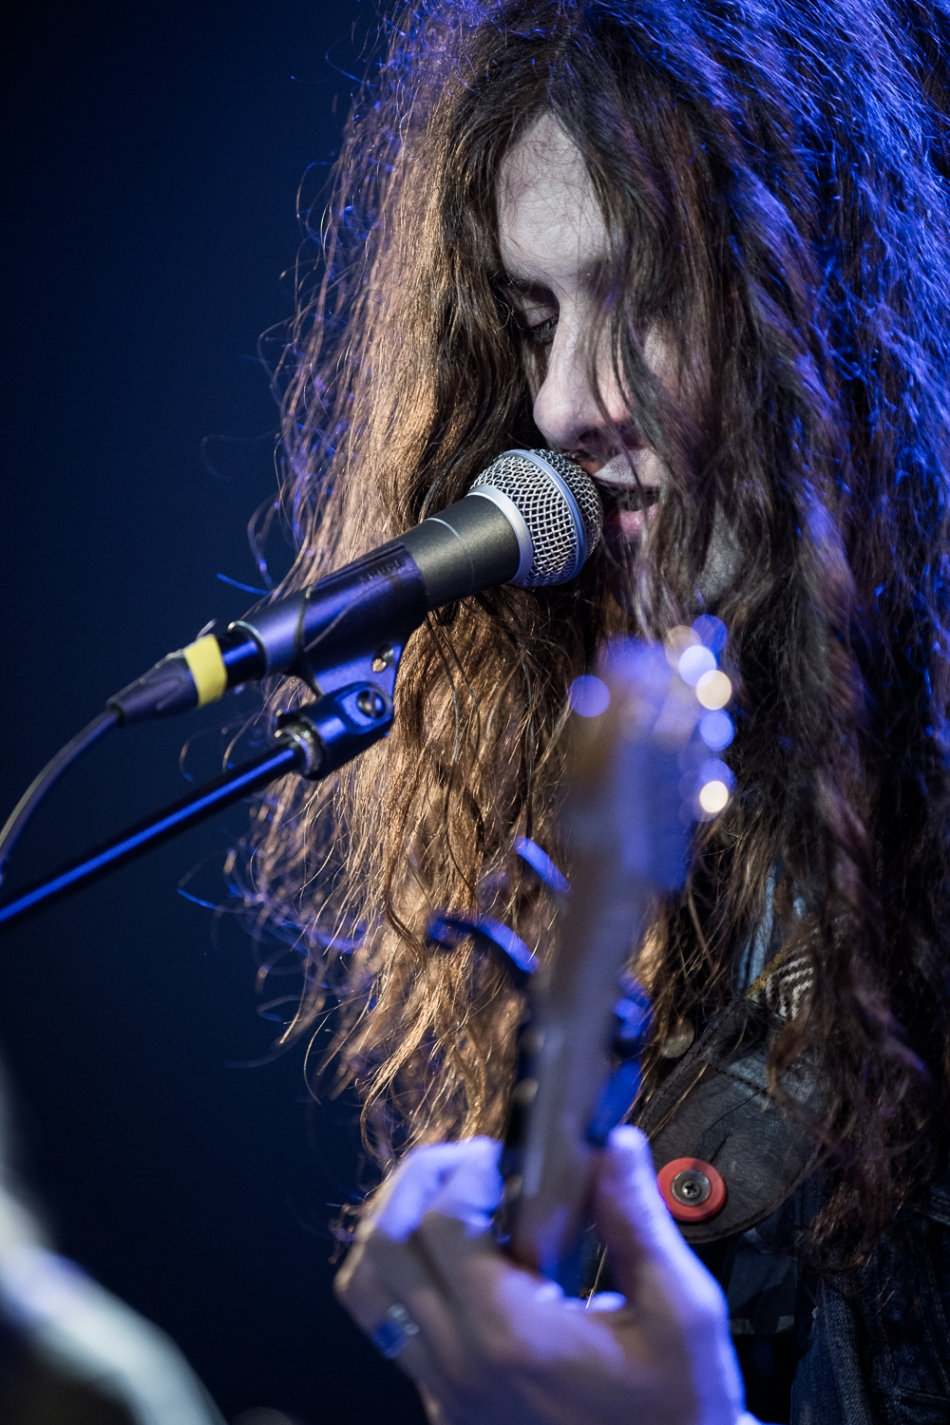 Kurt Vile & The Violators. Photo by Steffen Jørgensen (photo.stffn.dk)